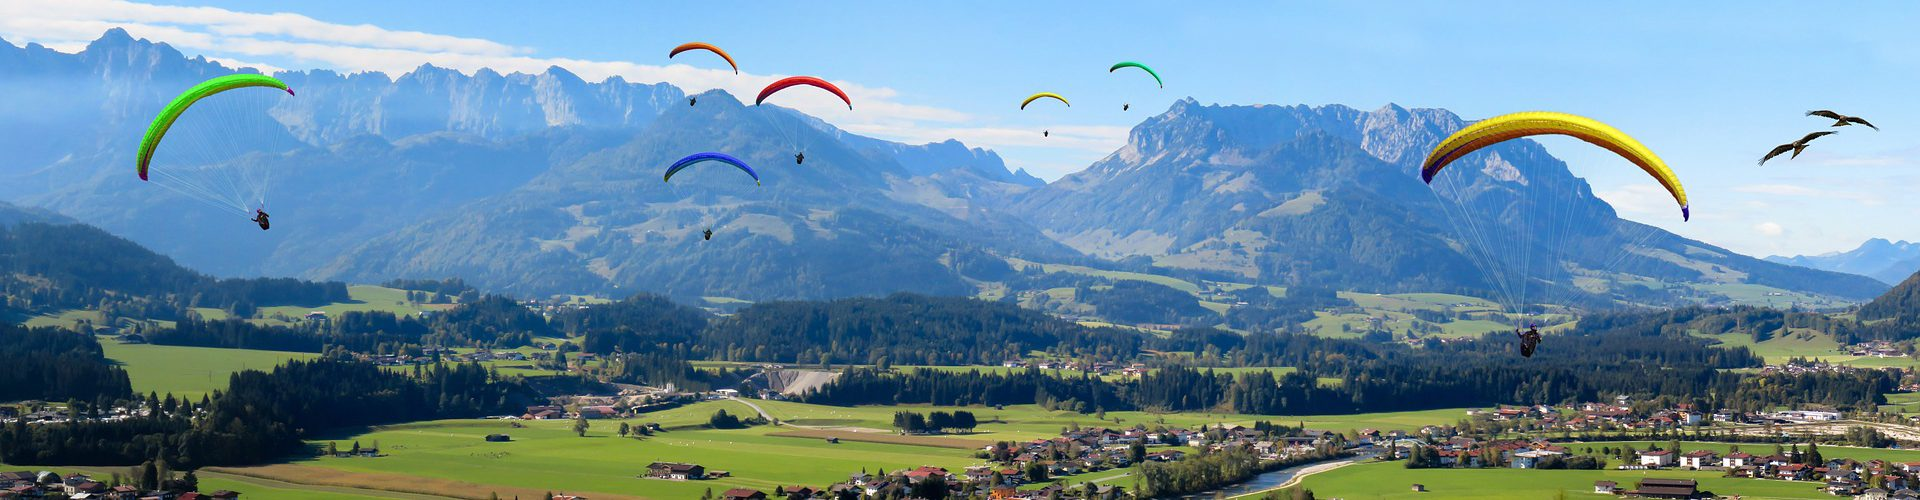 Paragliders in front of a mountain skyline